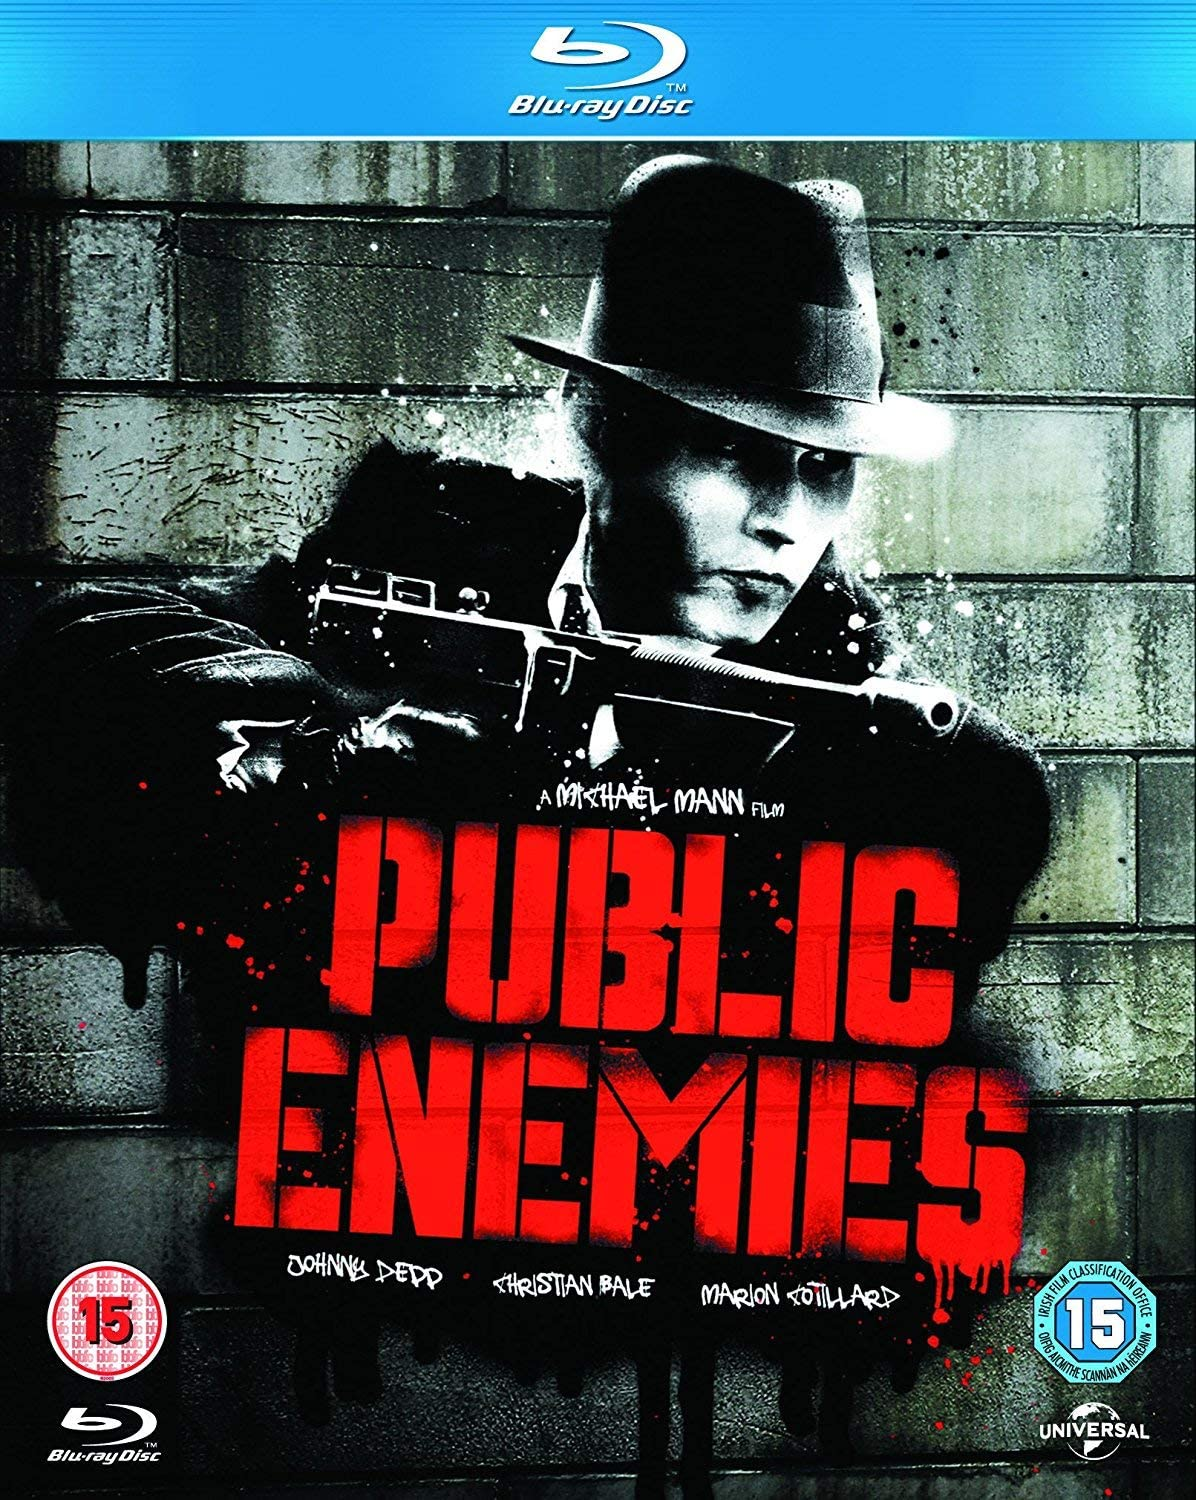 Public Enemies Screen Outlaws Edition Blu Ray 2009 Region Free Amazon Co Uk Christian Bale Johnny Depp Michael Mann Christian Bale Johnny Depp Michael Mann Kevin Misher Dvd Blu Ray